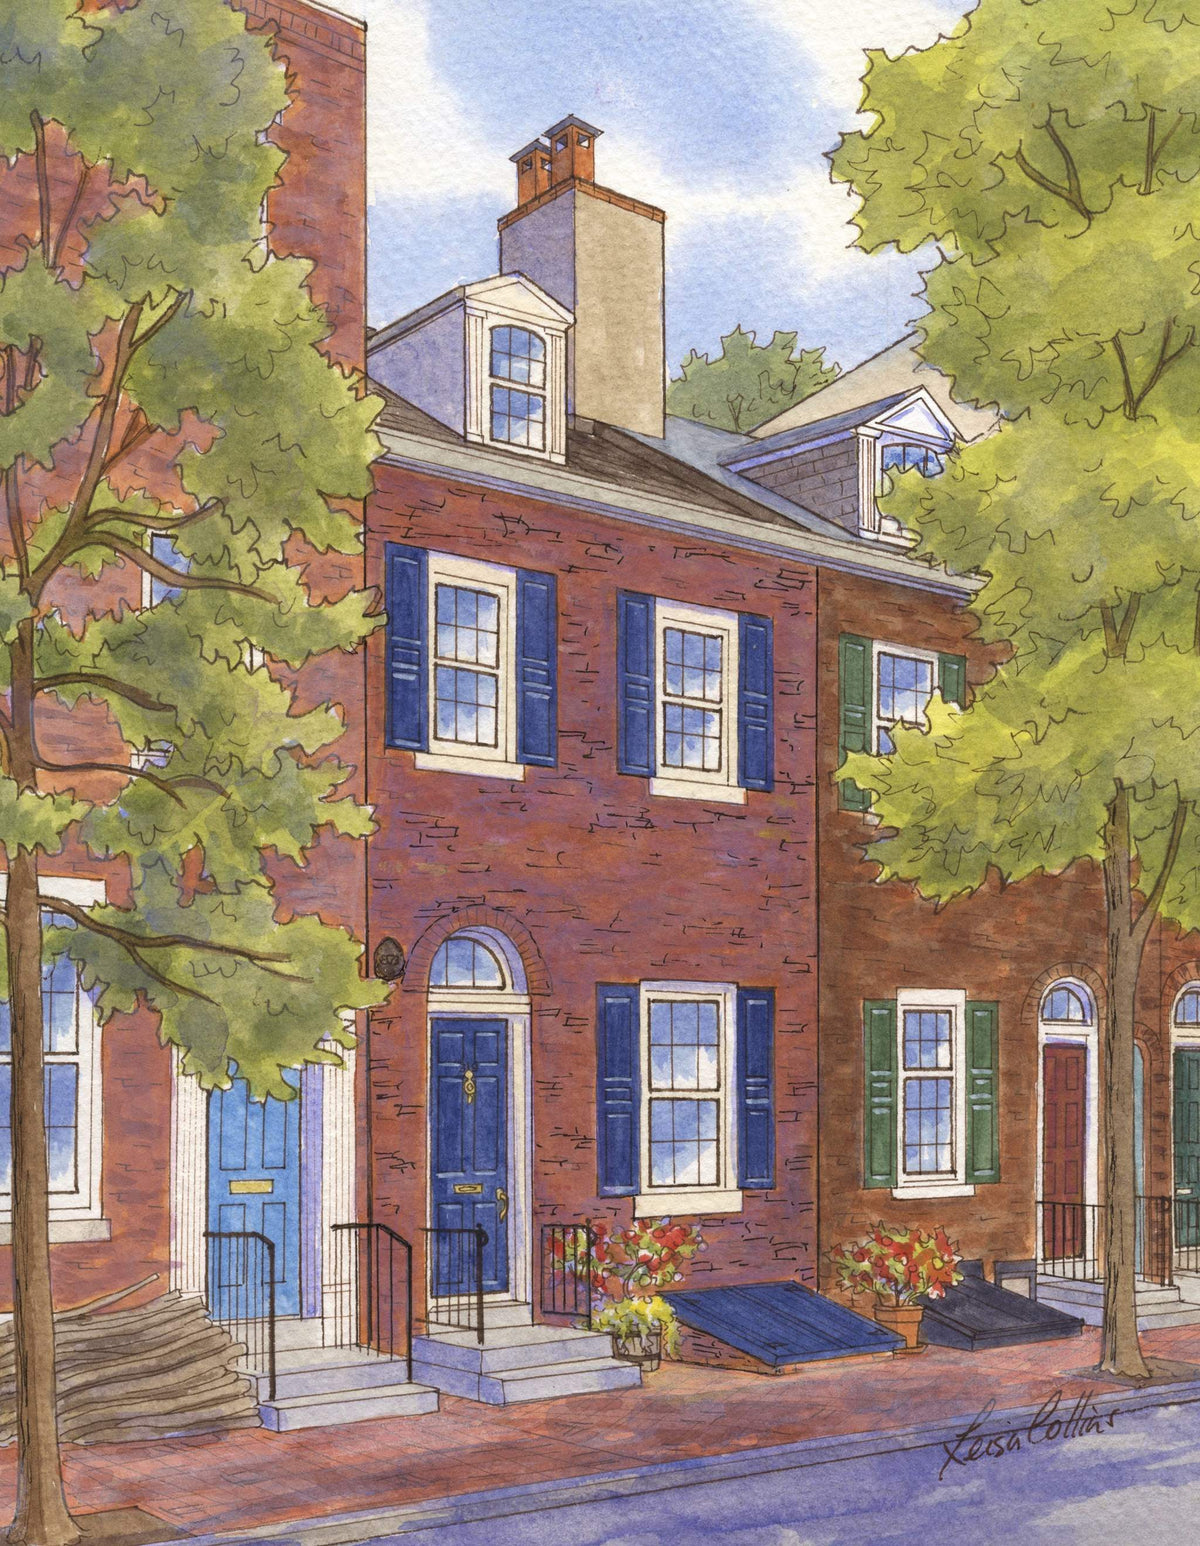 leisa-collins-art-shop - Philadelphia Row Houses - Pen and watercolor